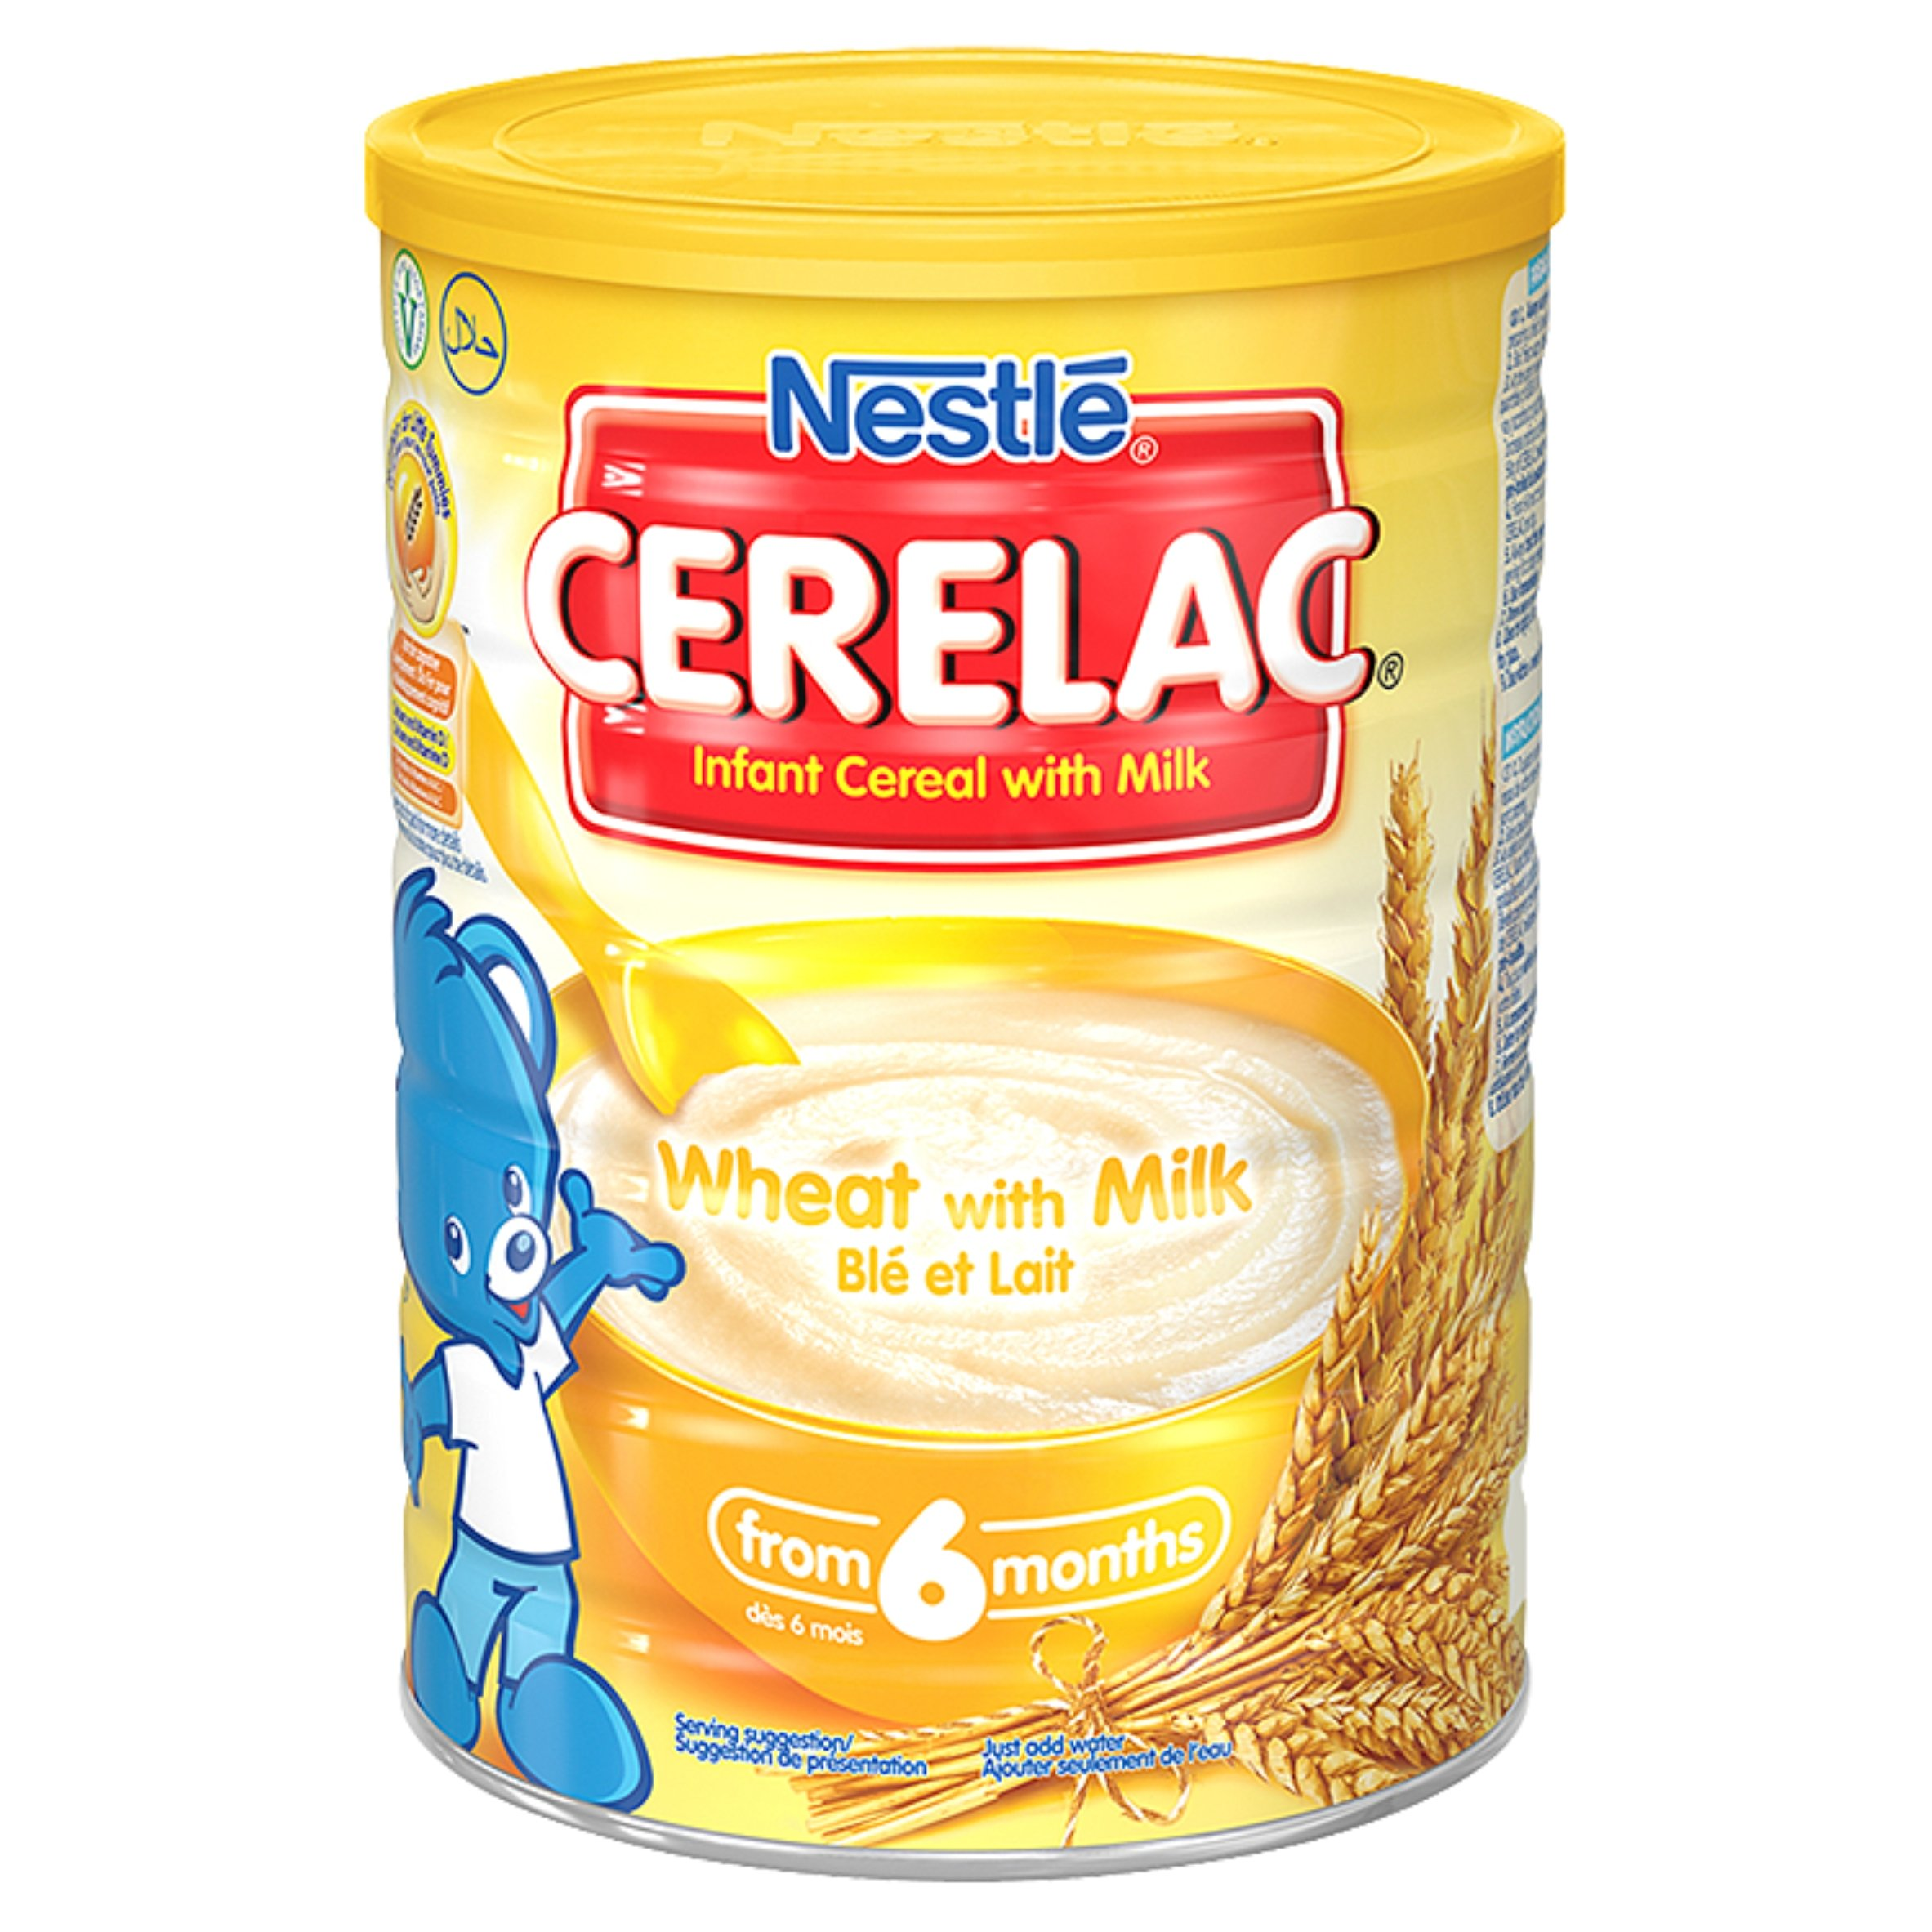 Nestle Cerelac Wheat With Milk Cereal, 14.10 Ounce: Amazon